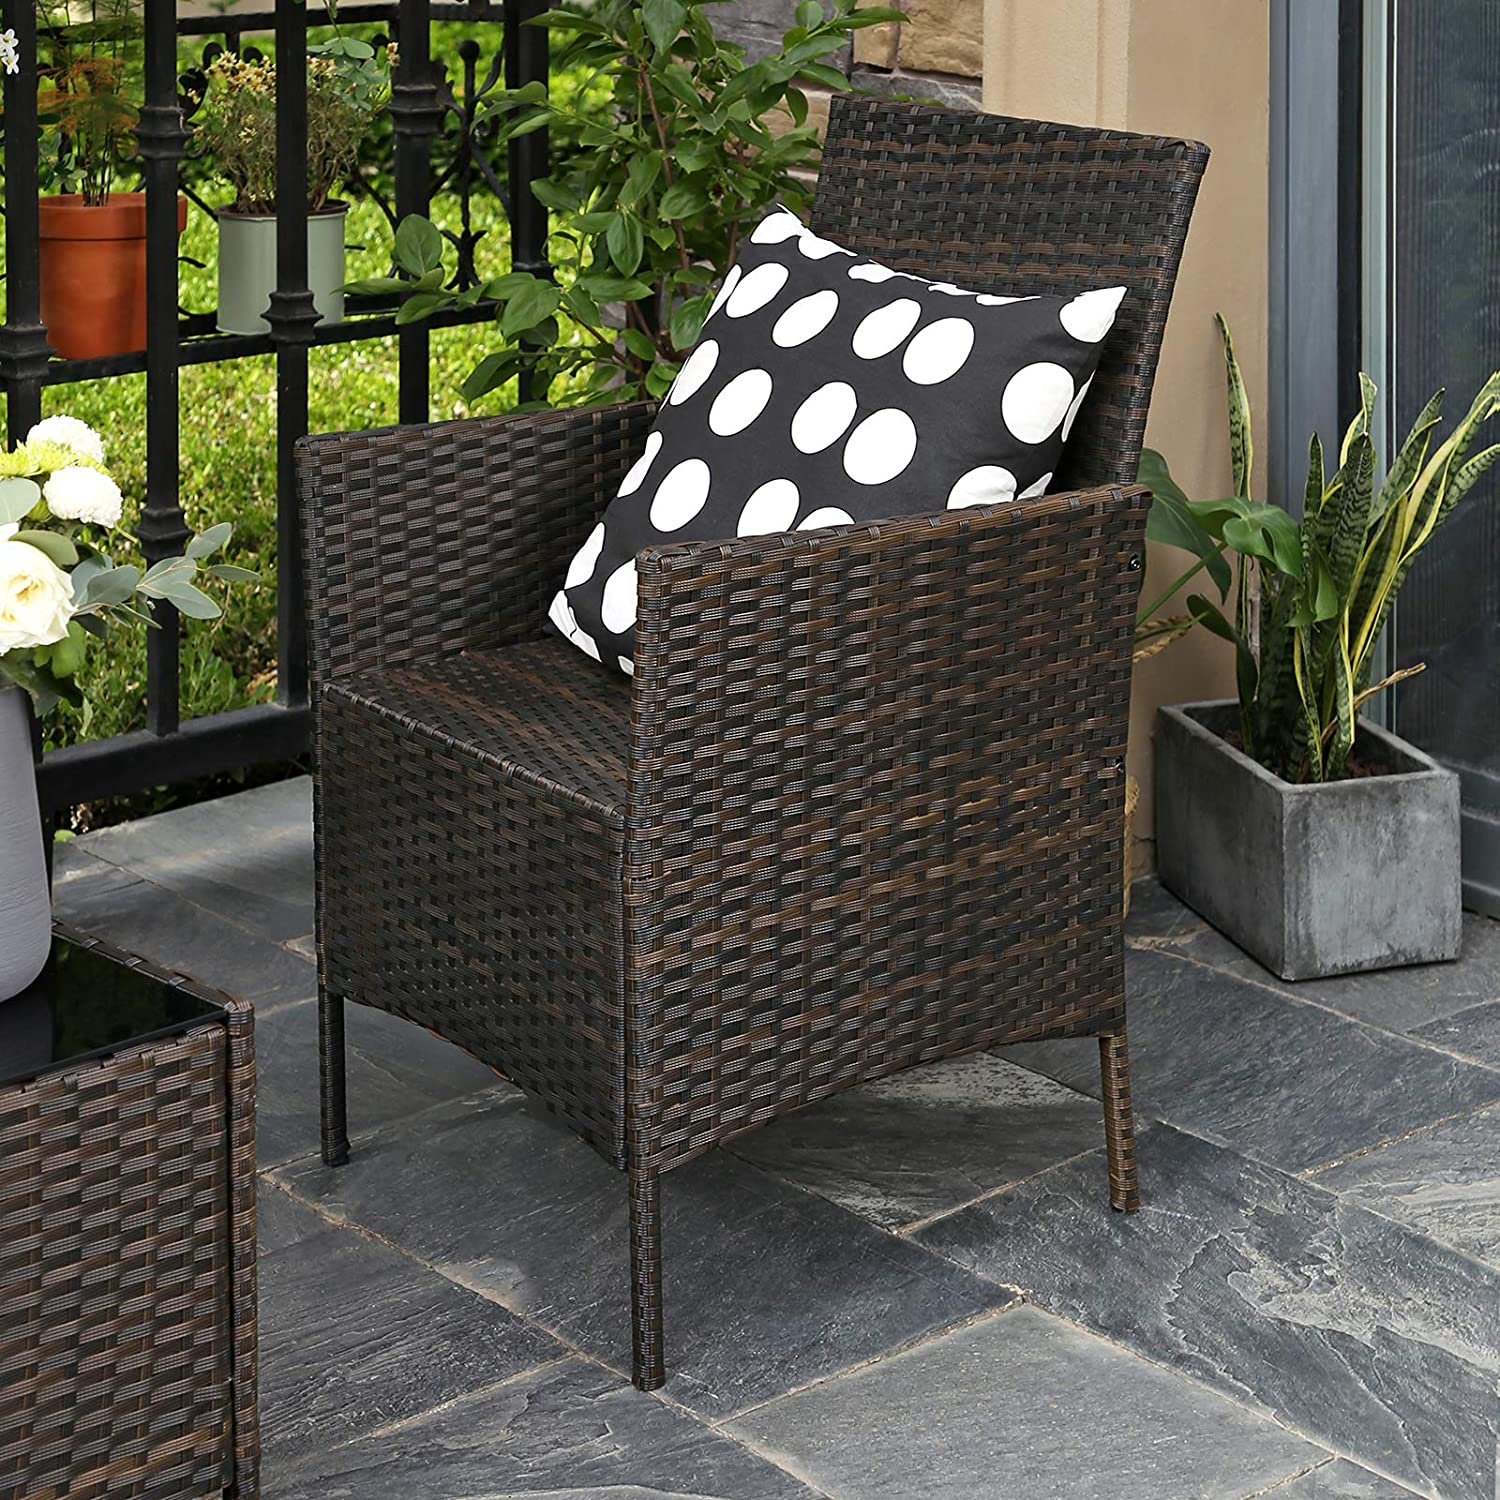 Patio Furniture Set with 2 Chairs Brown and Beige GGF002BR1 3 Removable Covers SONGMICS Set of 4 Polyrattan Garden Furniture 1 Coffee Table with Tempered Glass Top 1 Sofa